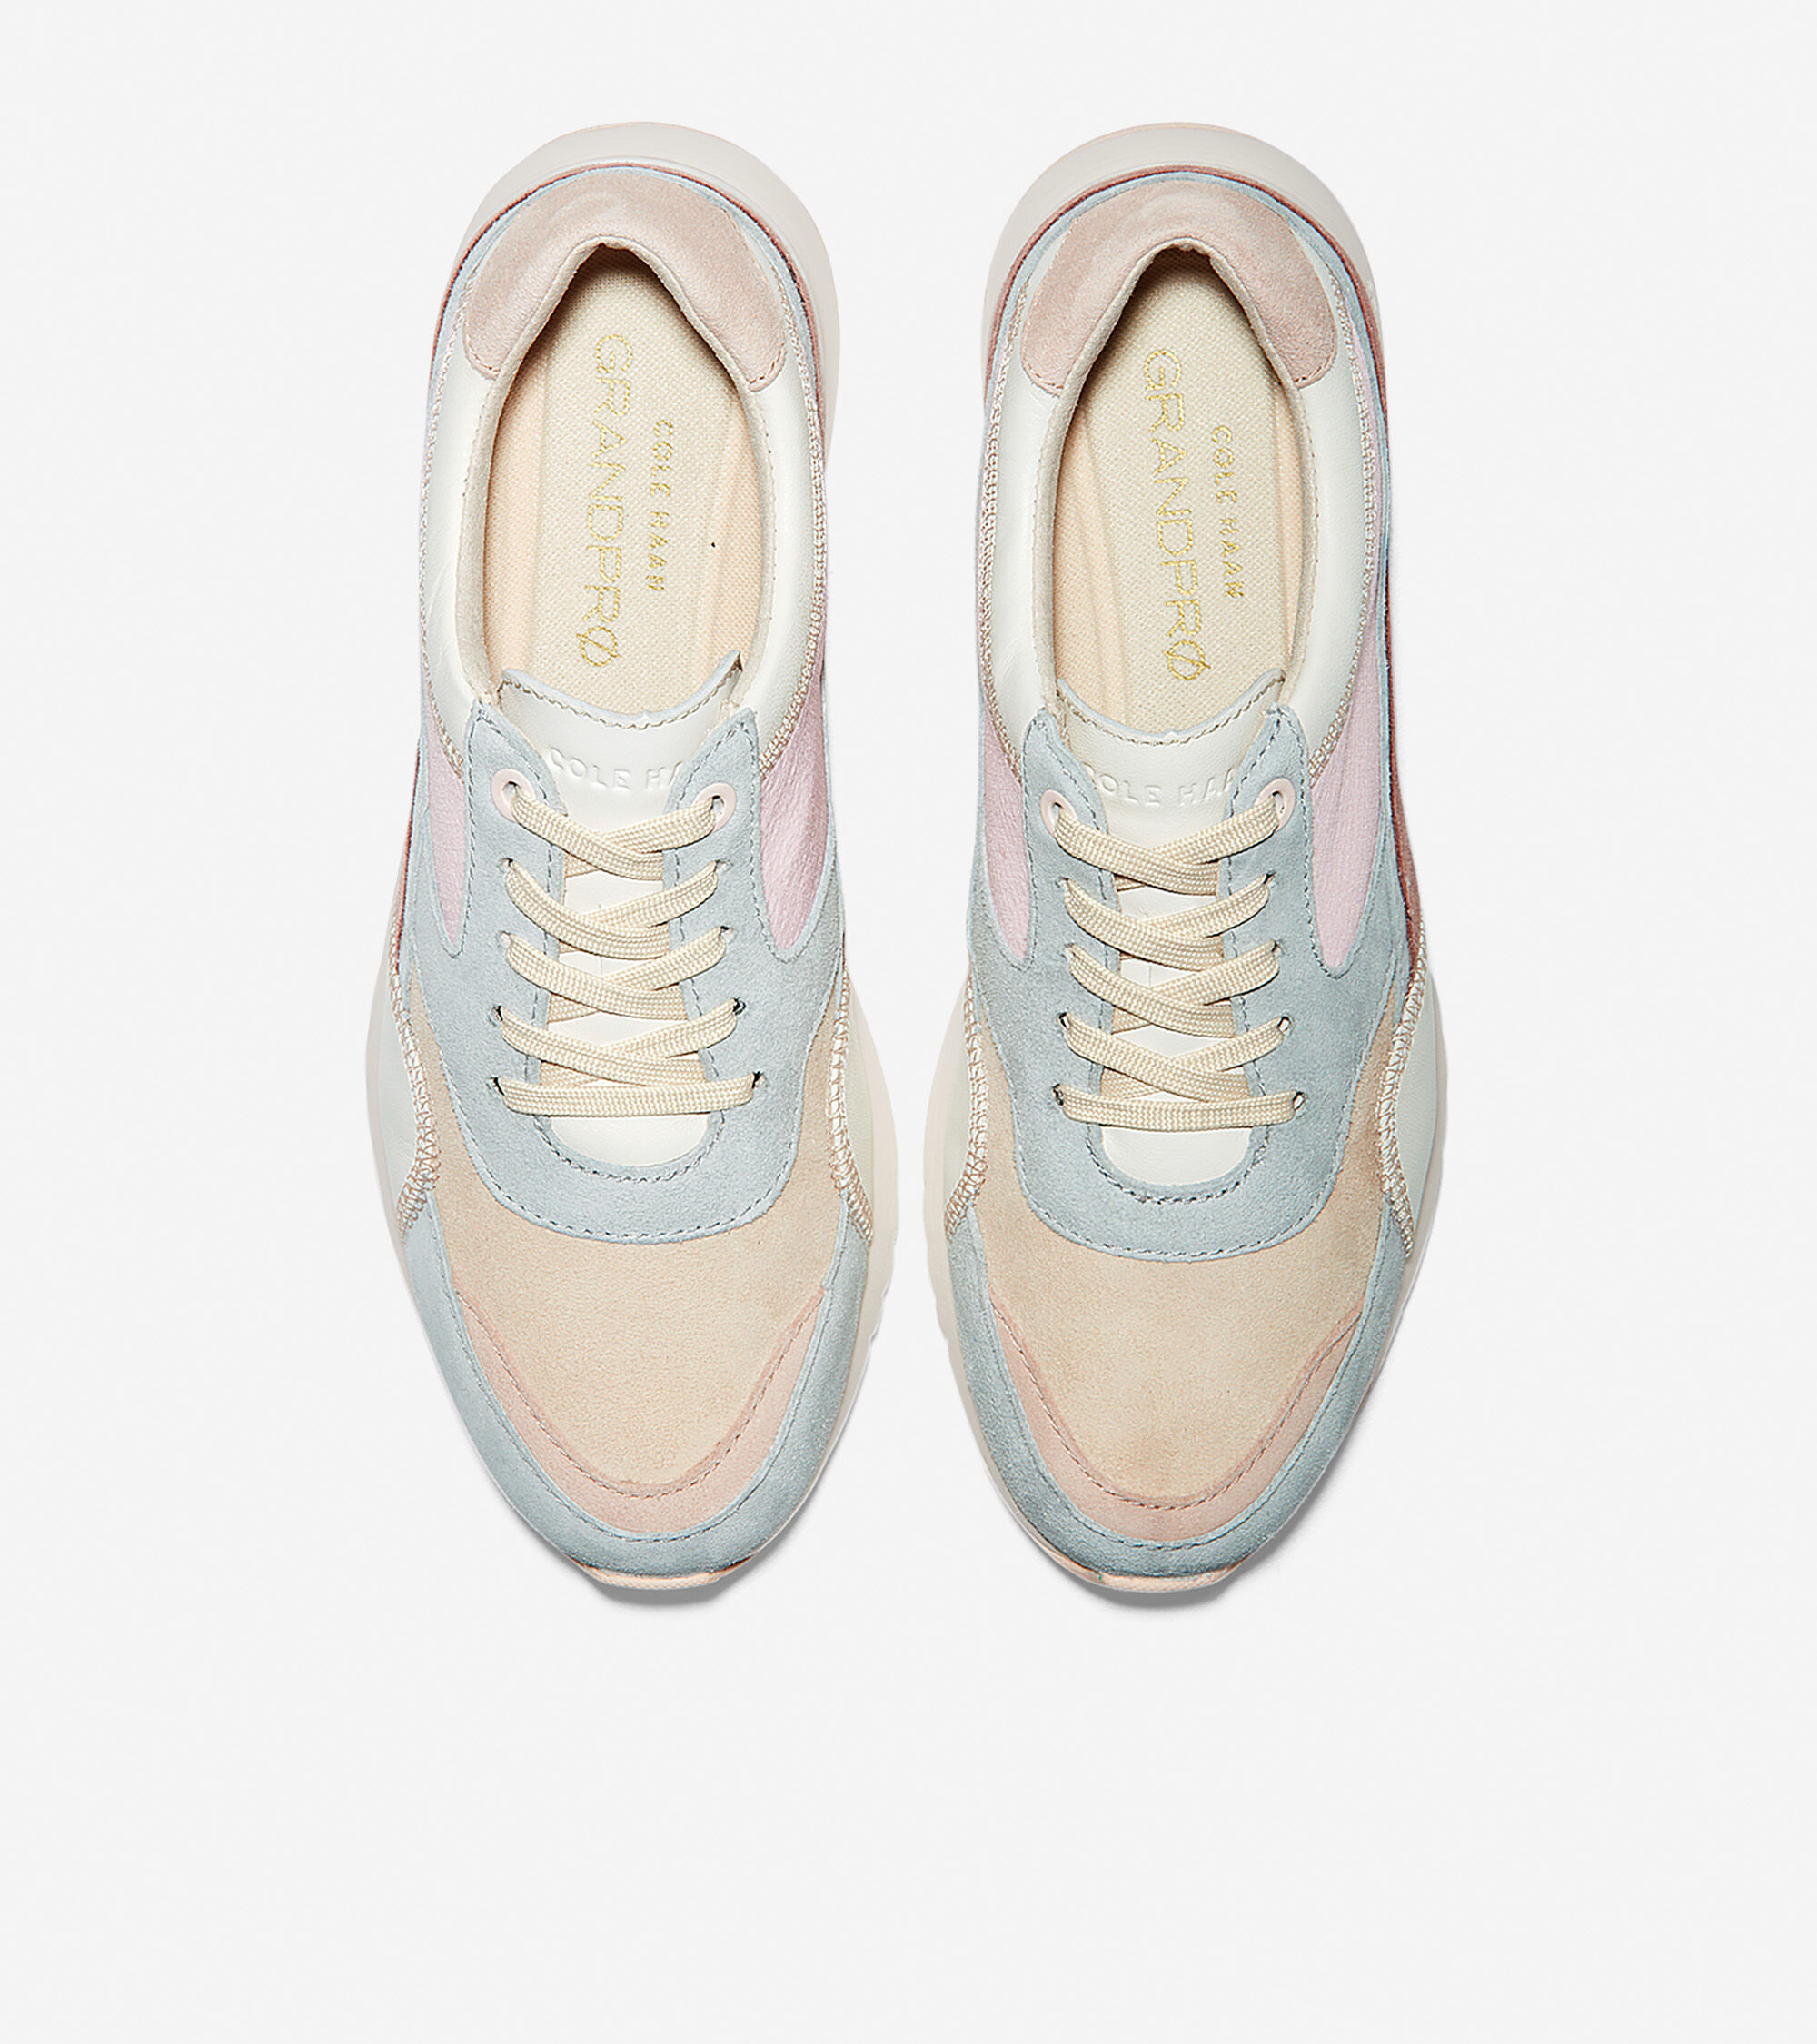 cf20af0e27 Women's GrandPro Downtown Sneakers in Ivory | Cole Haan